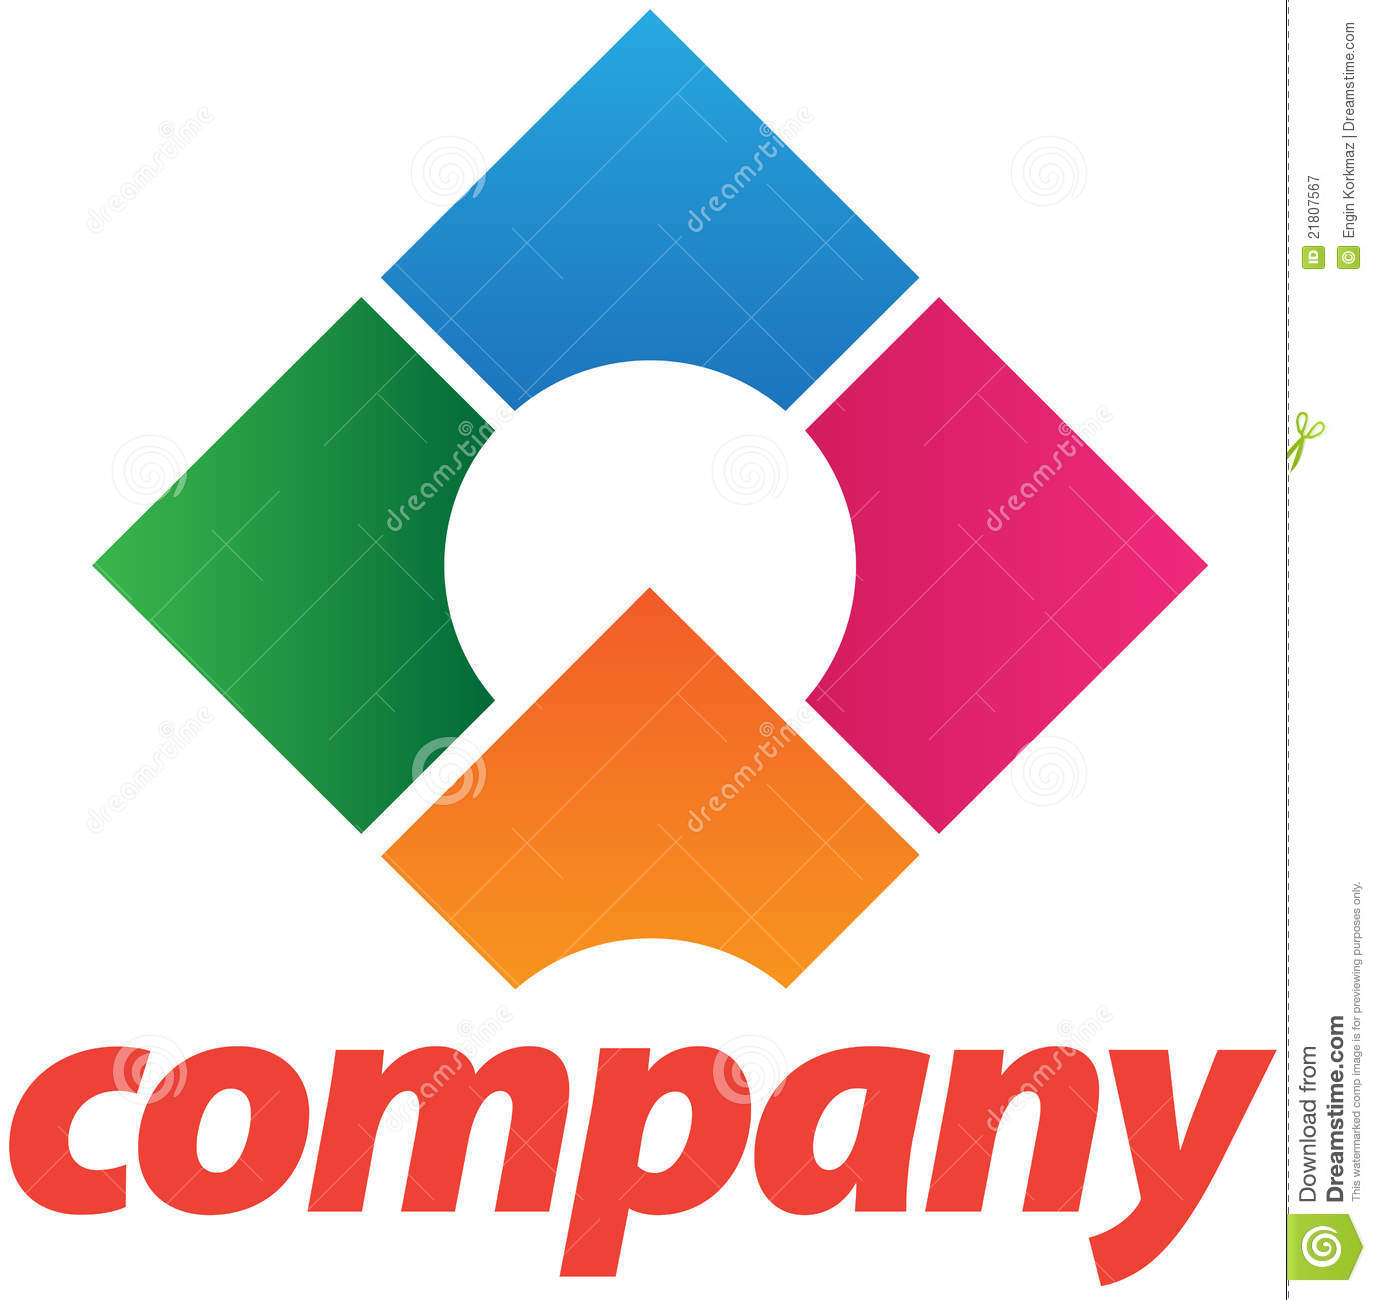 Corporate logo design template royalty free stock for Design a company logo free templates